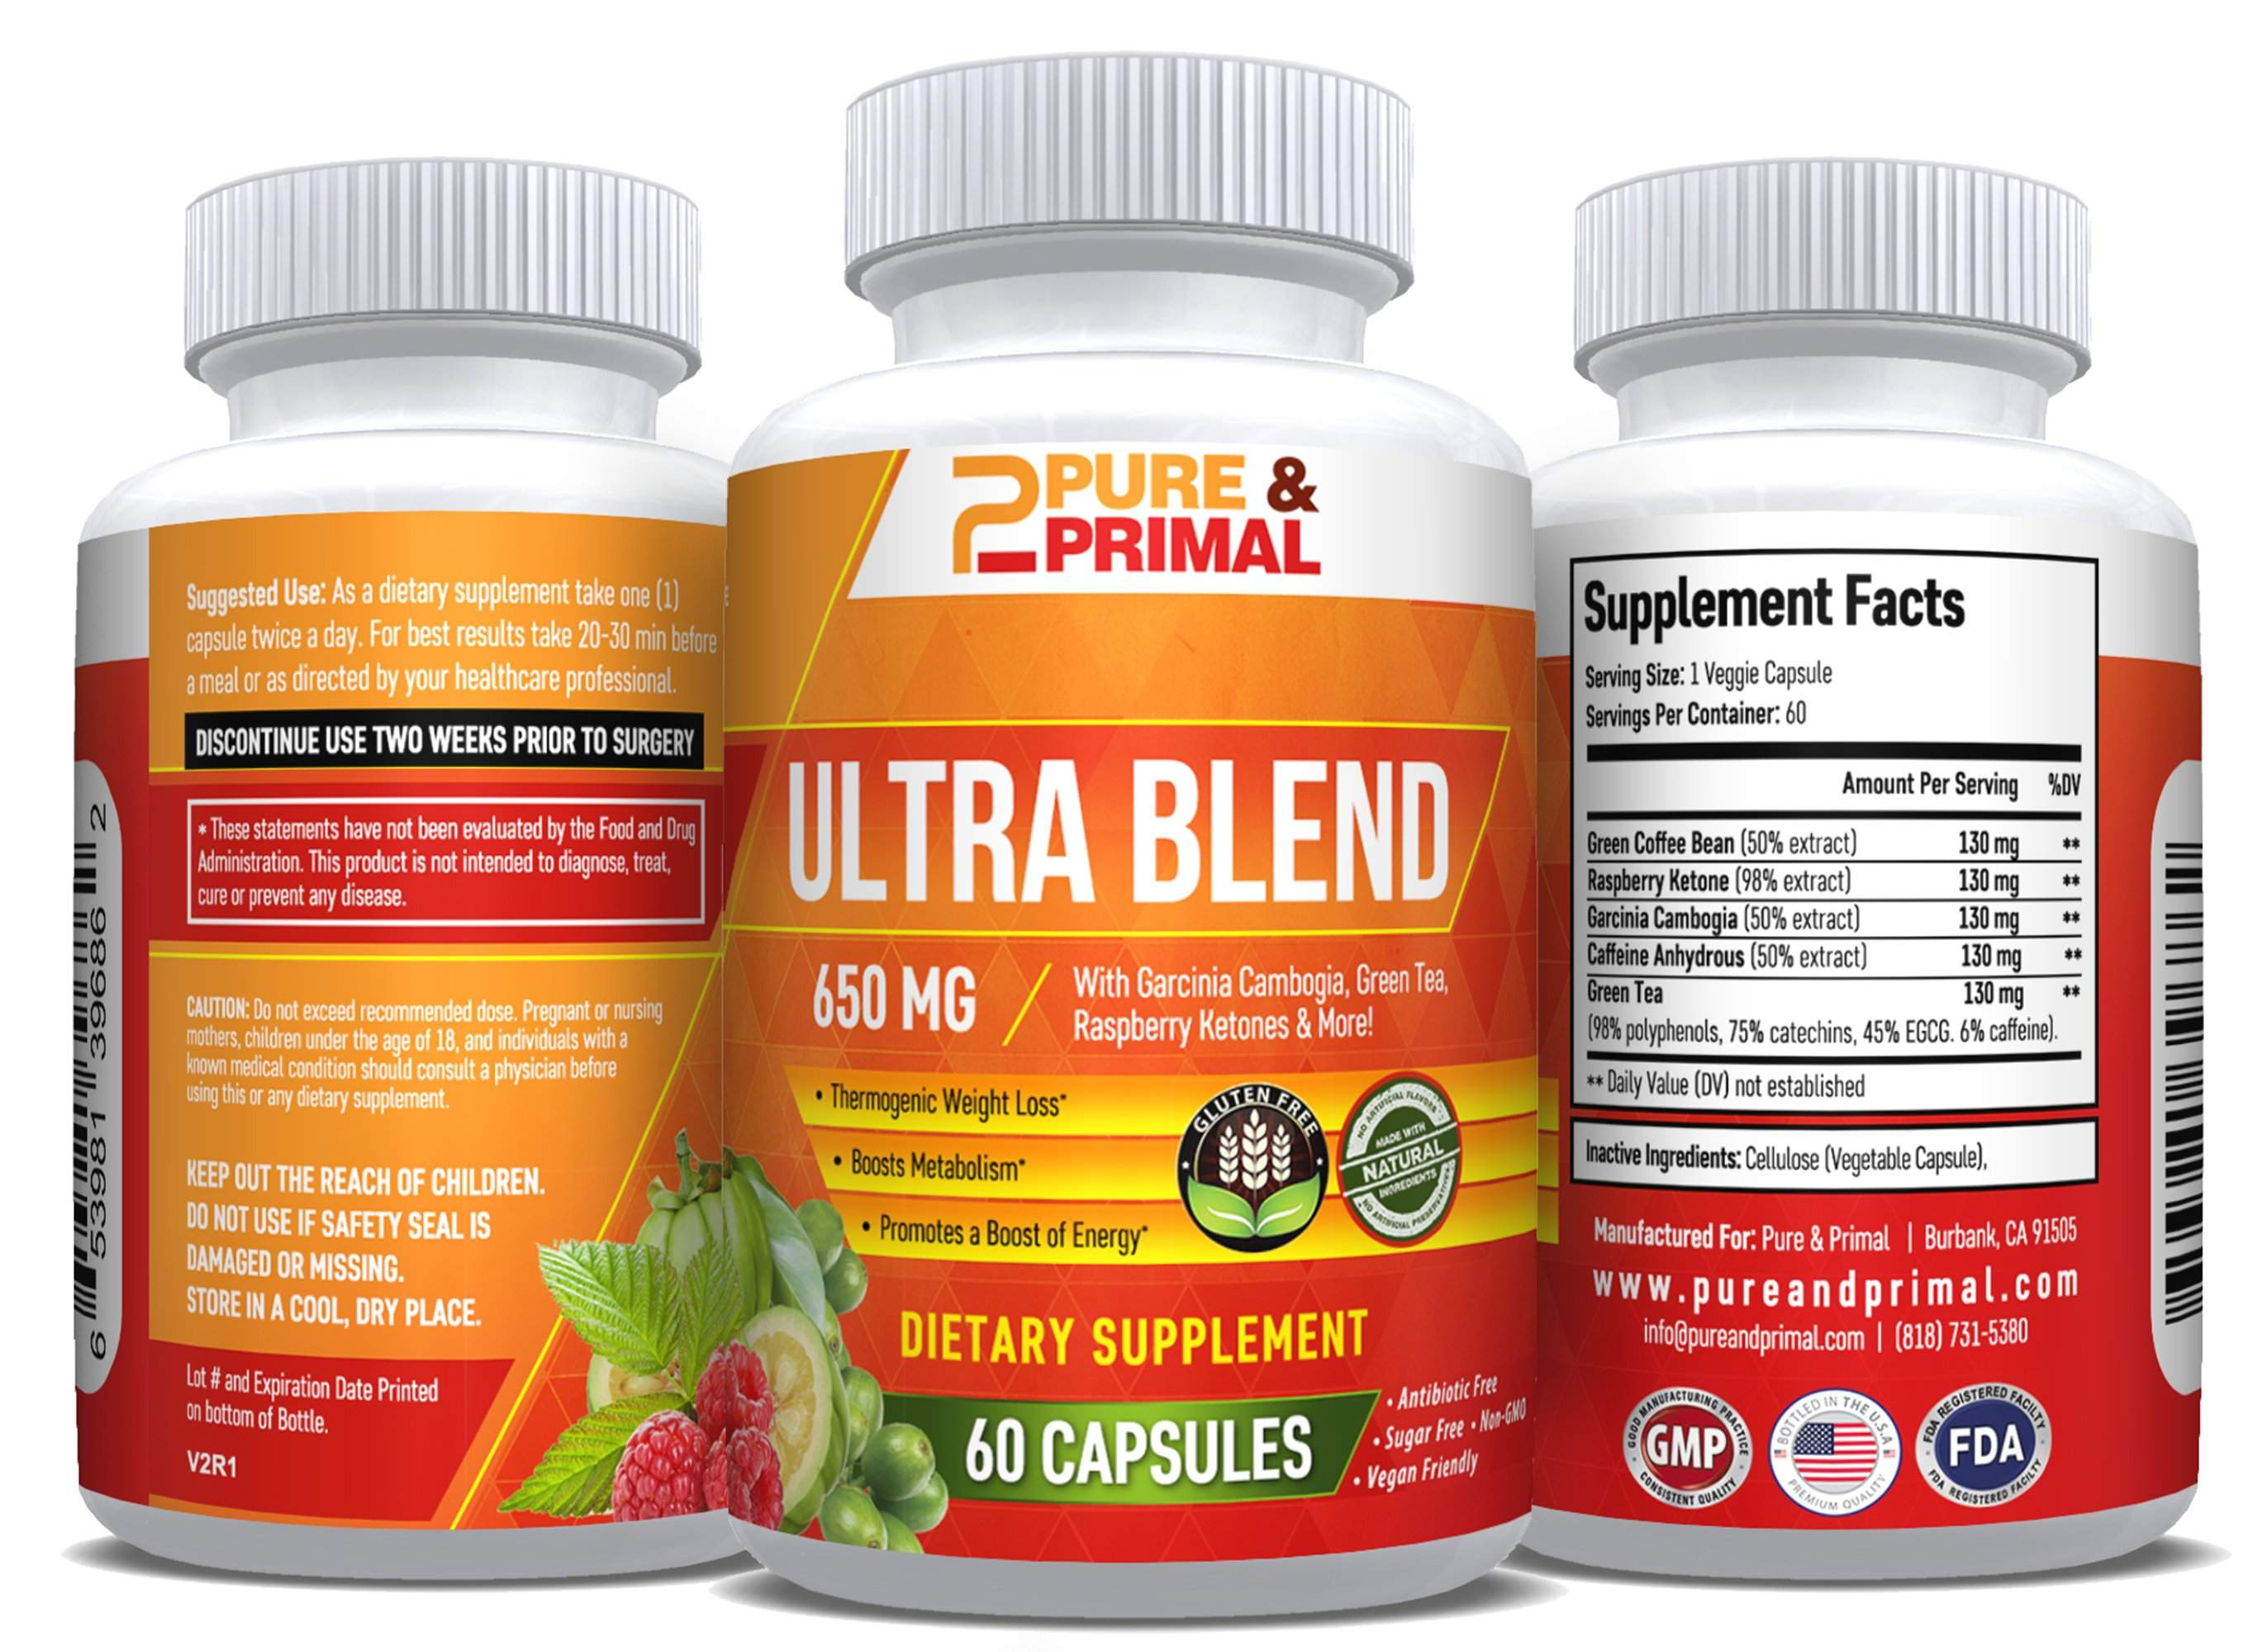 (2 Bottles) - Ultra Blend - Enhances Weight Loss